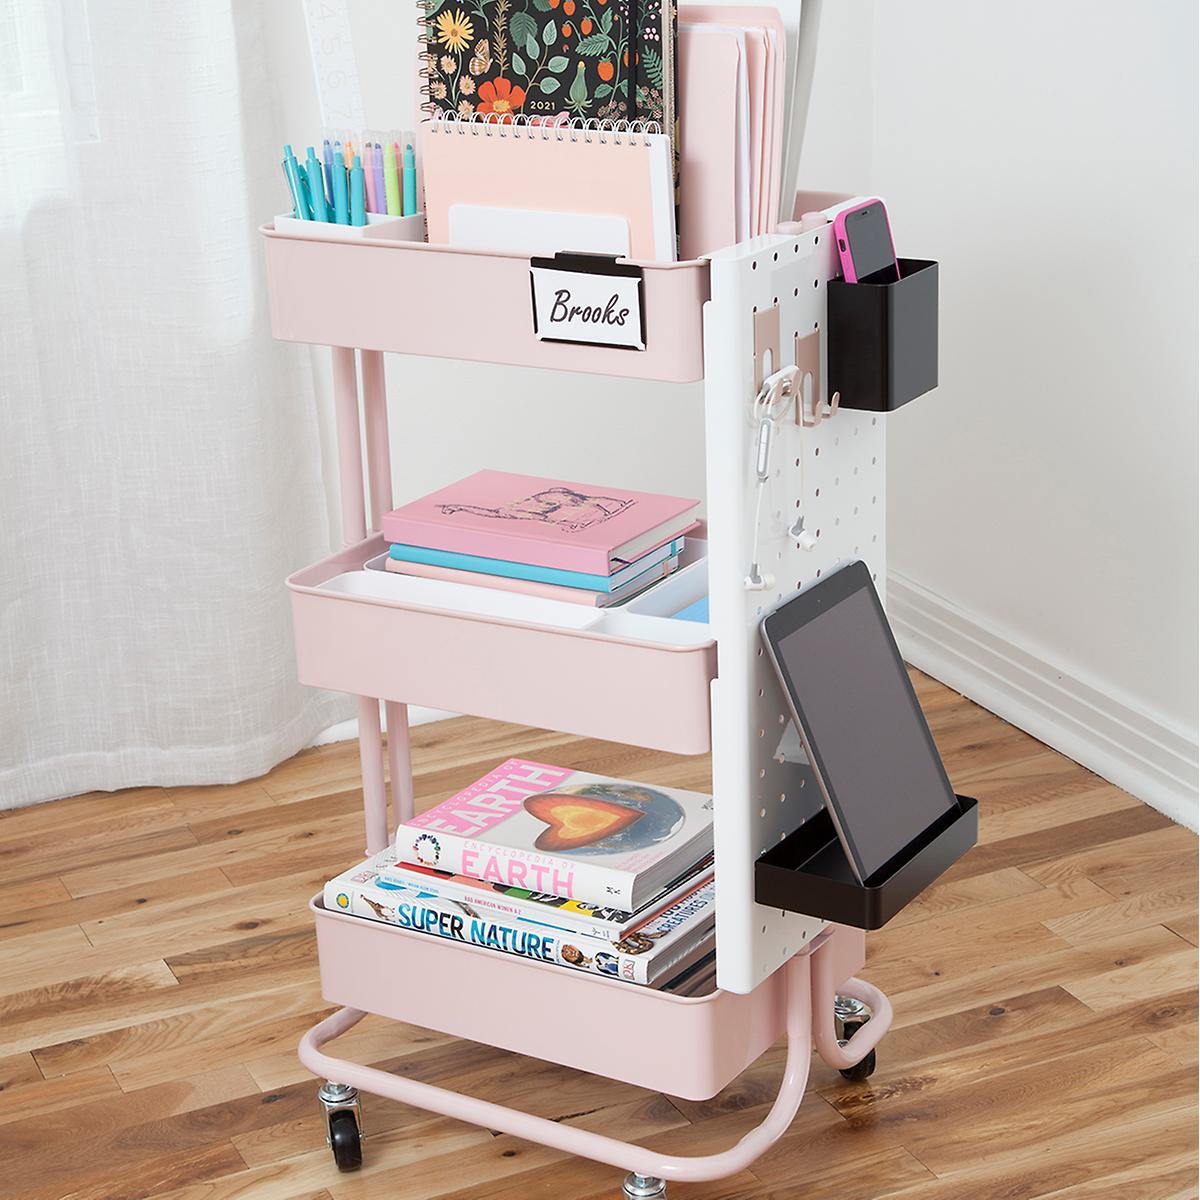 Home Learning Blush 3-Tier Cart Starter Kit